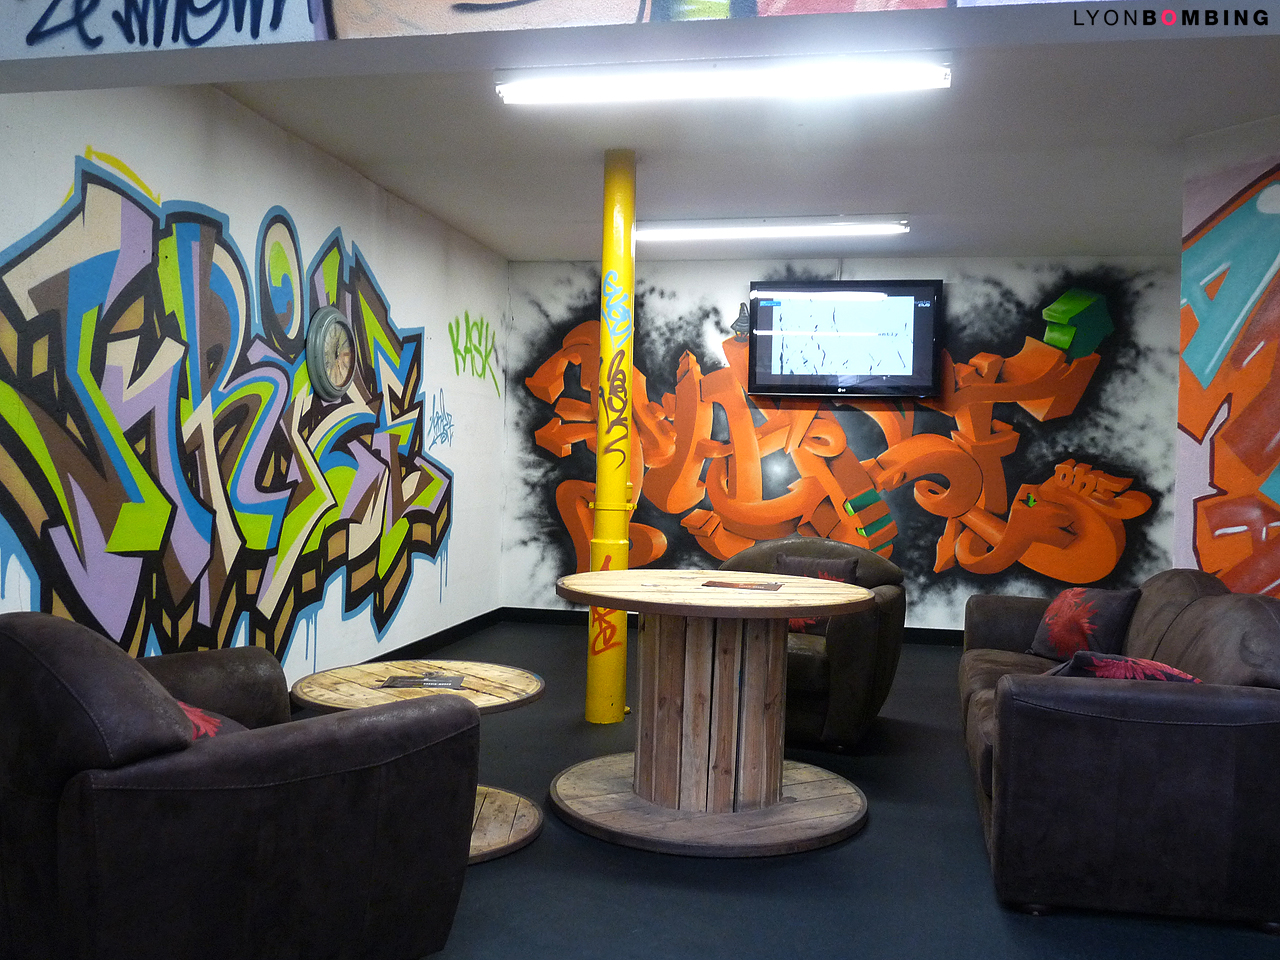 d co 100 graffiti gigagym roanne int rieur lyonbombing. Black Bedroom Furniture Sets. Home Design Ideas